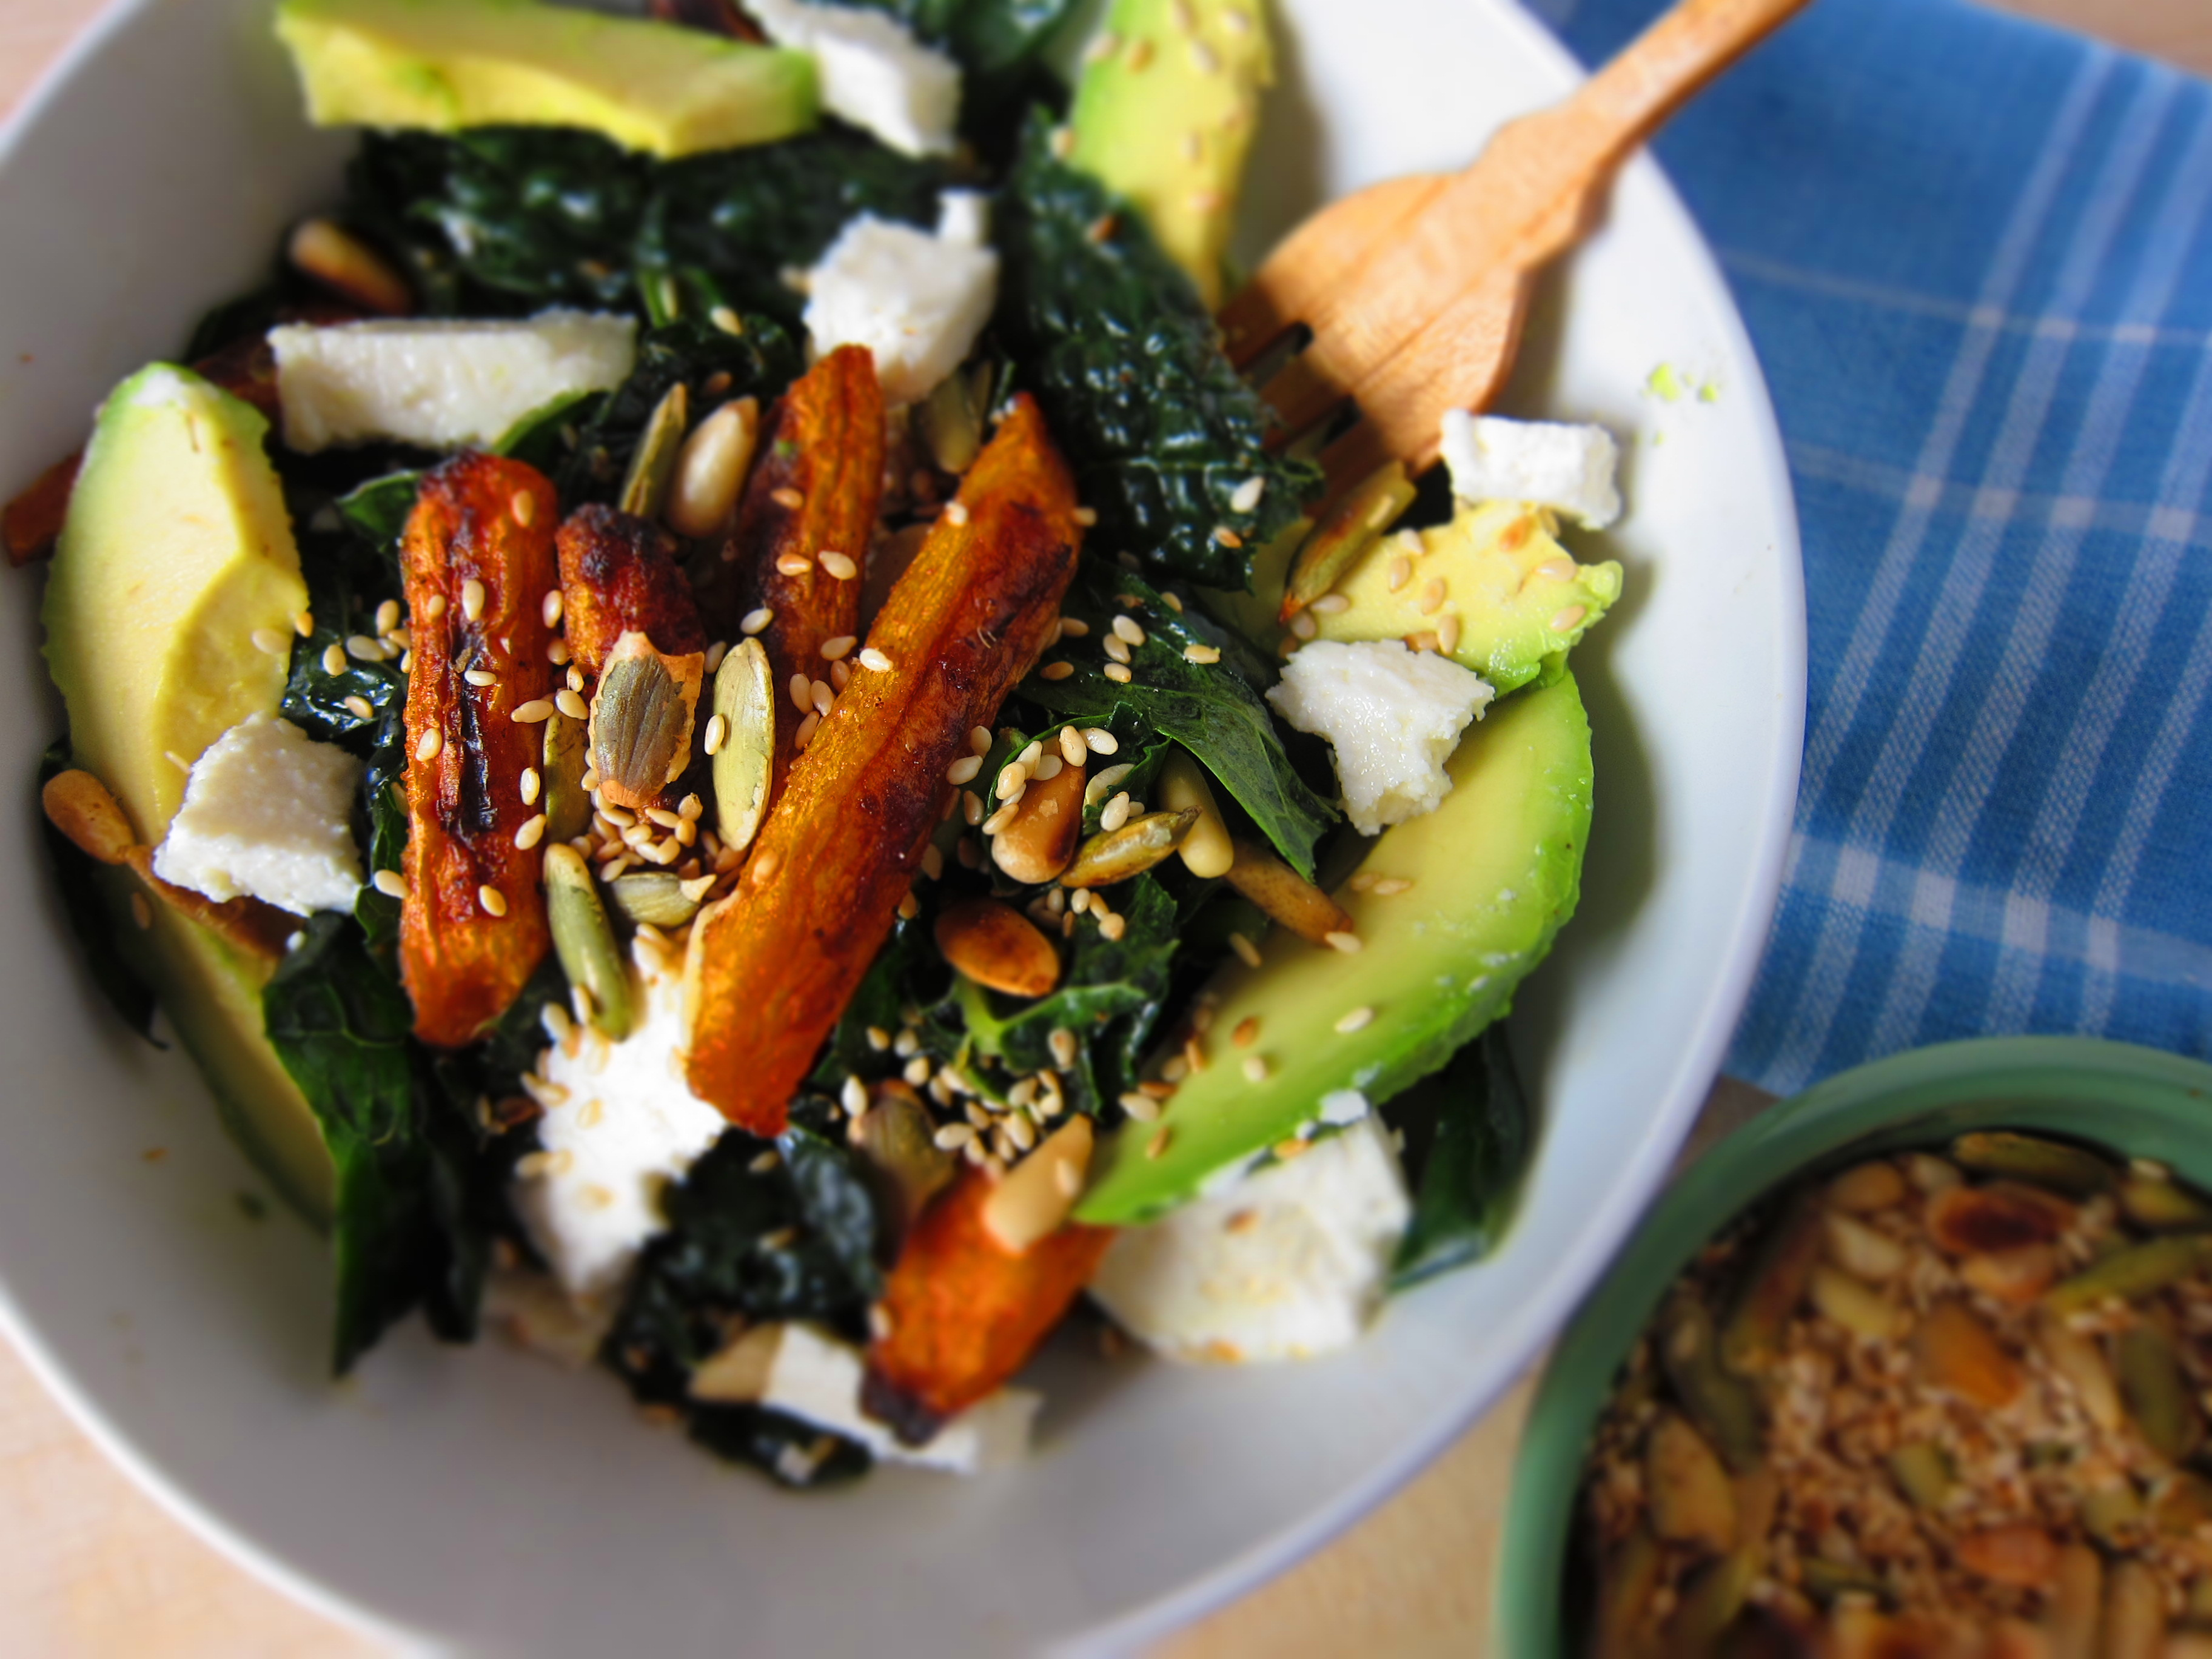 Carrot And Avocado Salad With Crunchy Seeds Recipe — Dishmaps